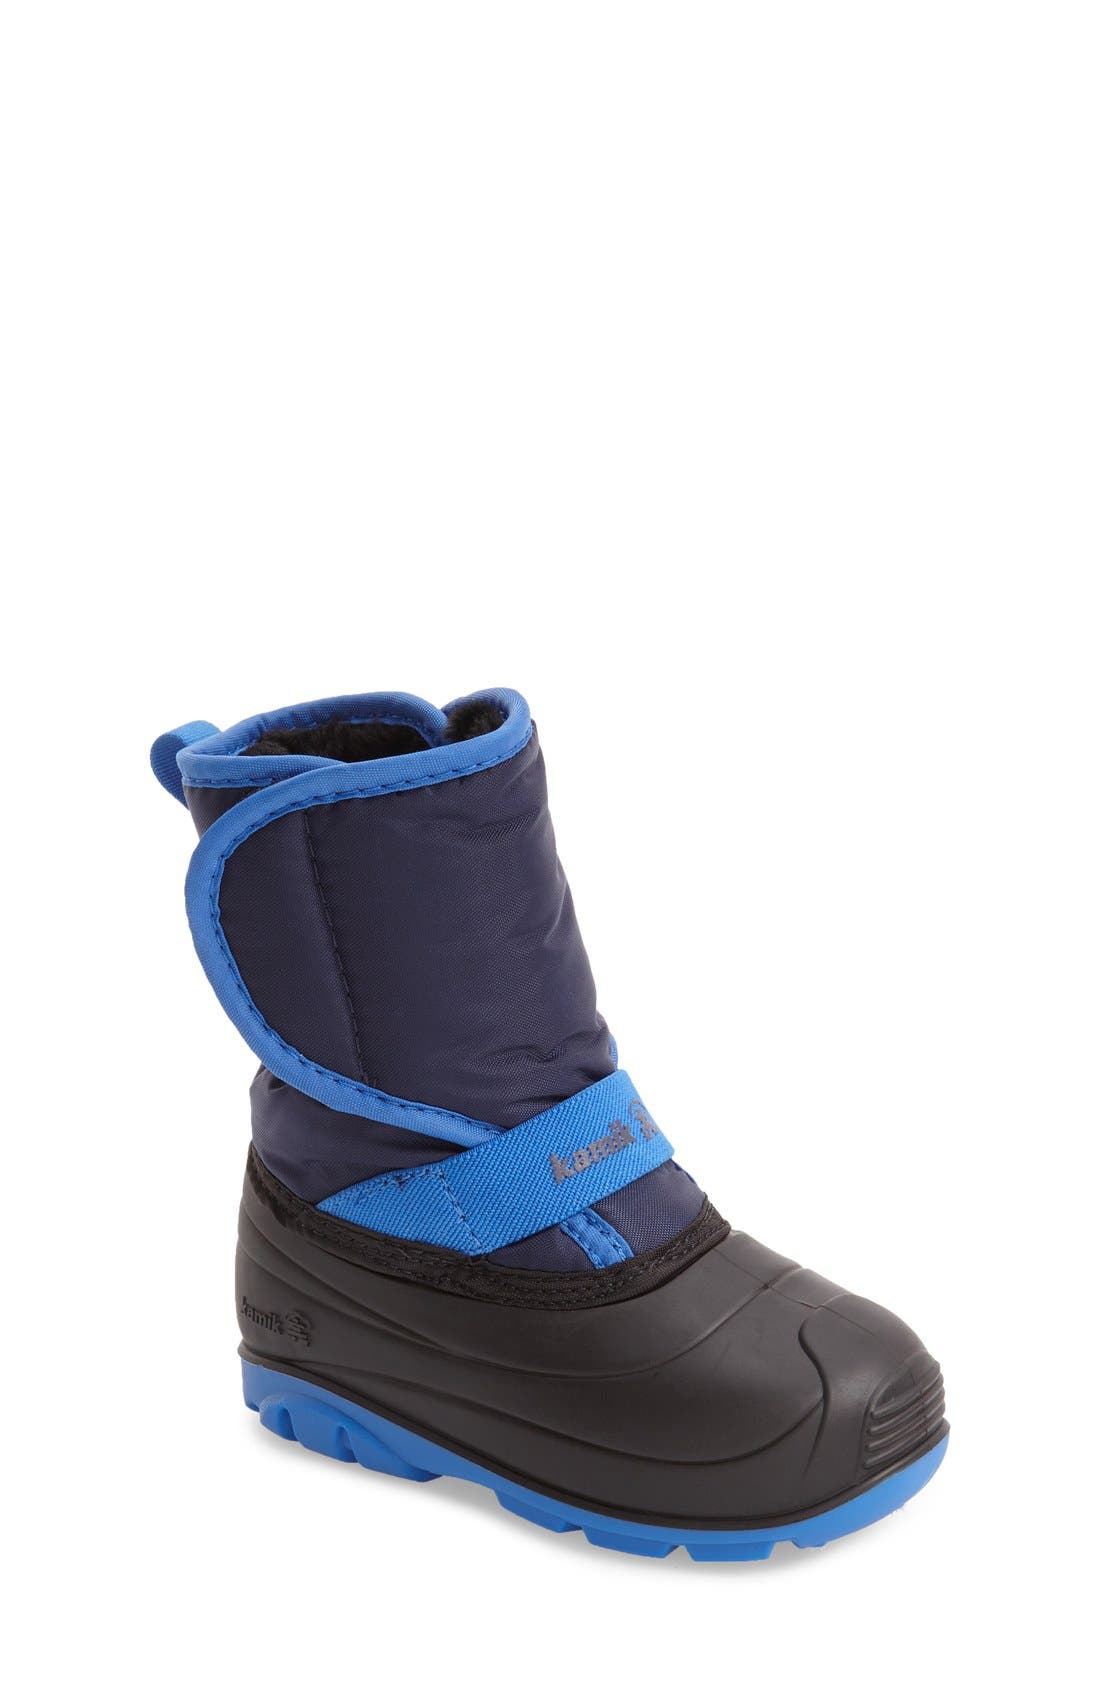 Alternate Image 1 Selected - Kamik Pika Waterproof Faux Fur Lined Snow Boot (Walker & Toddler)